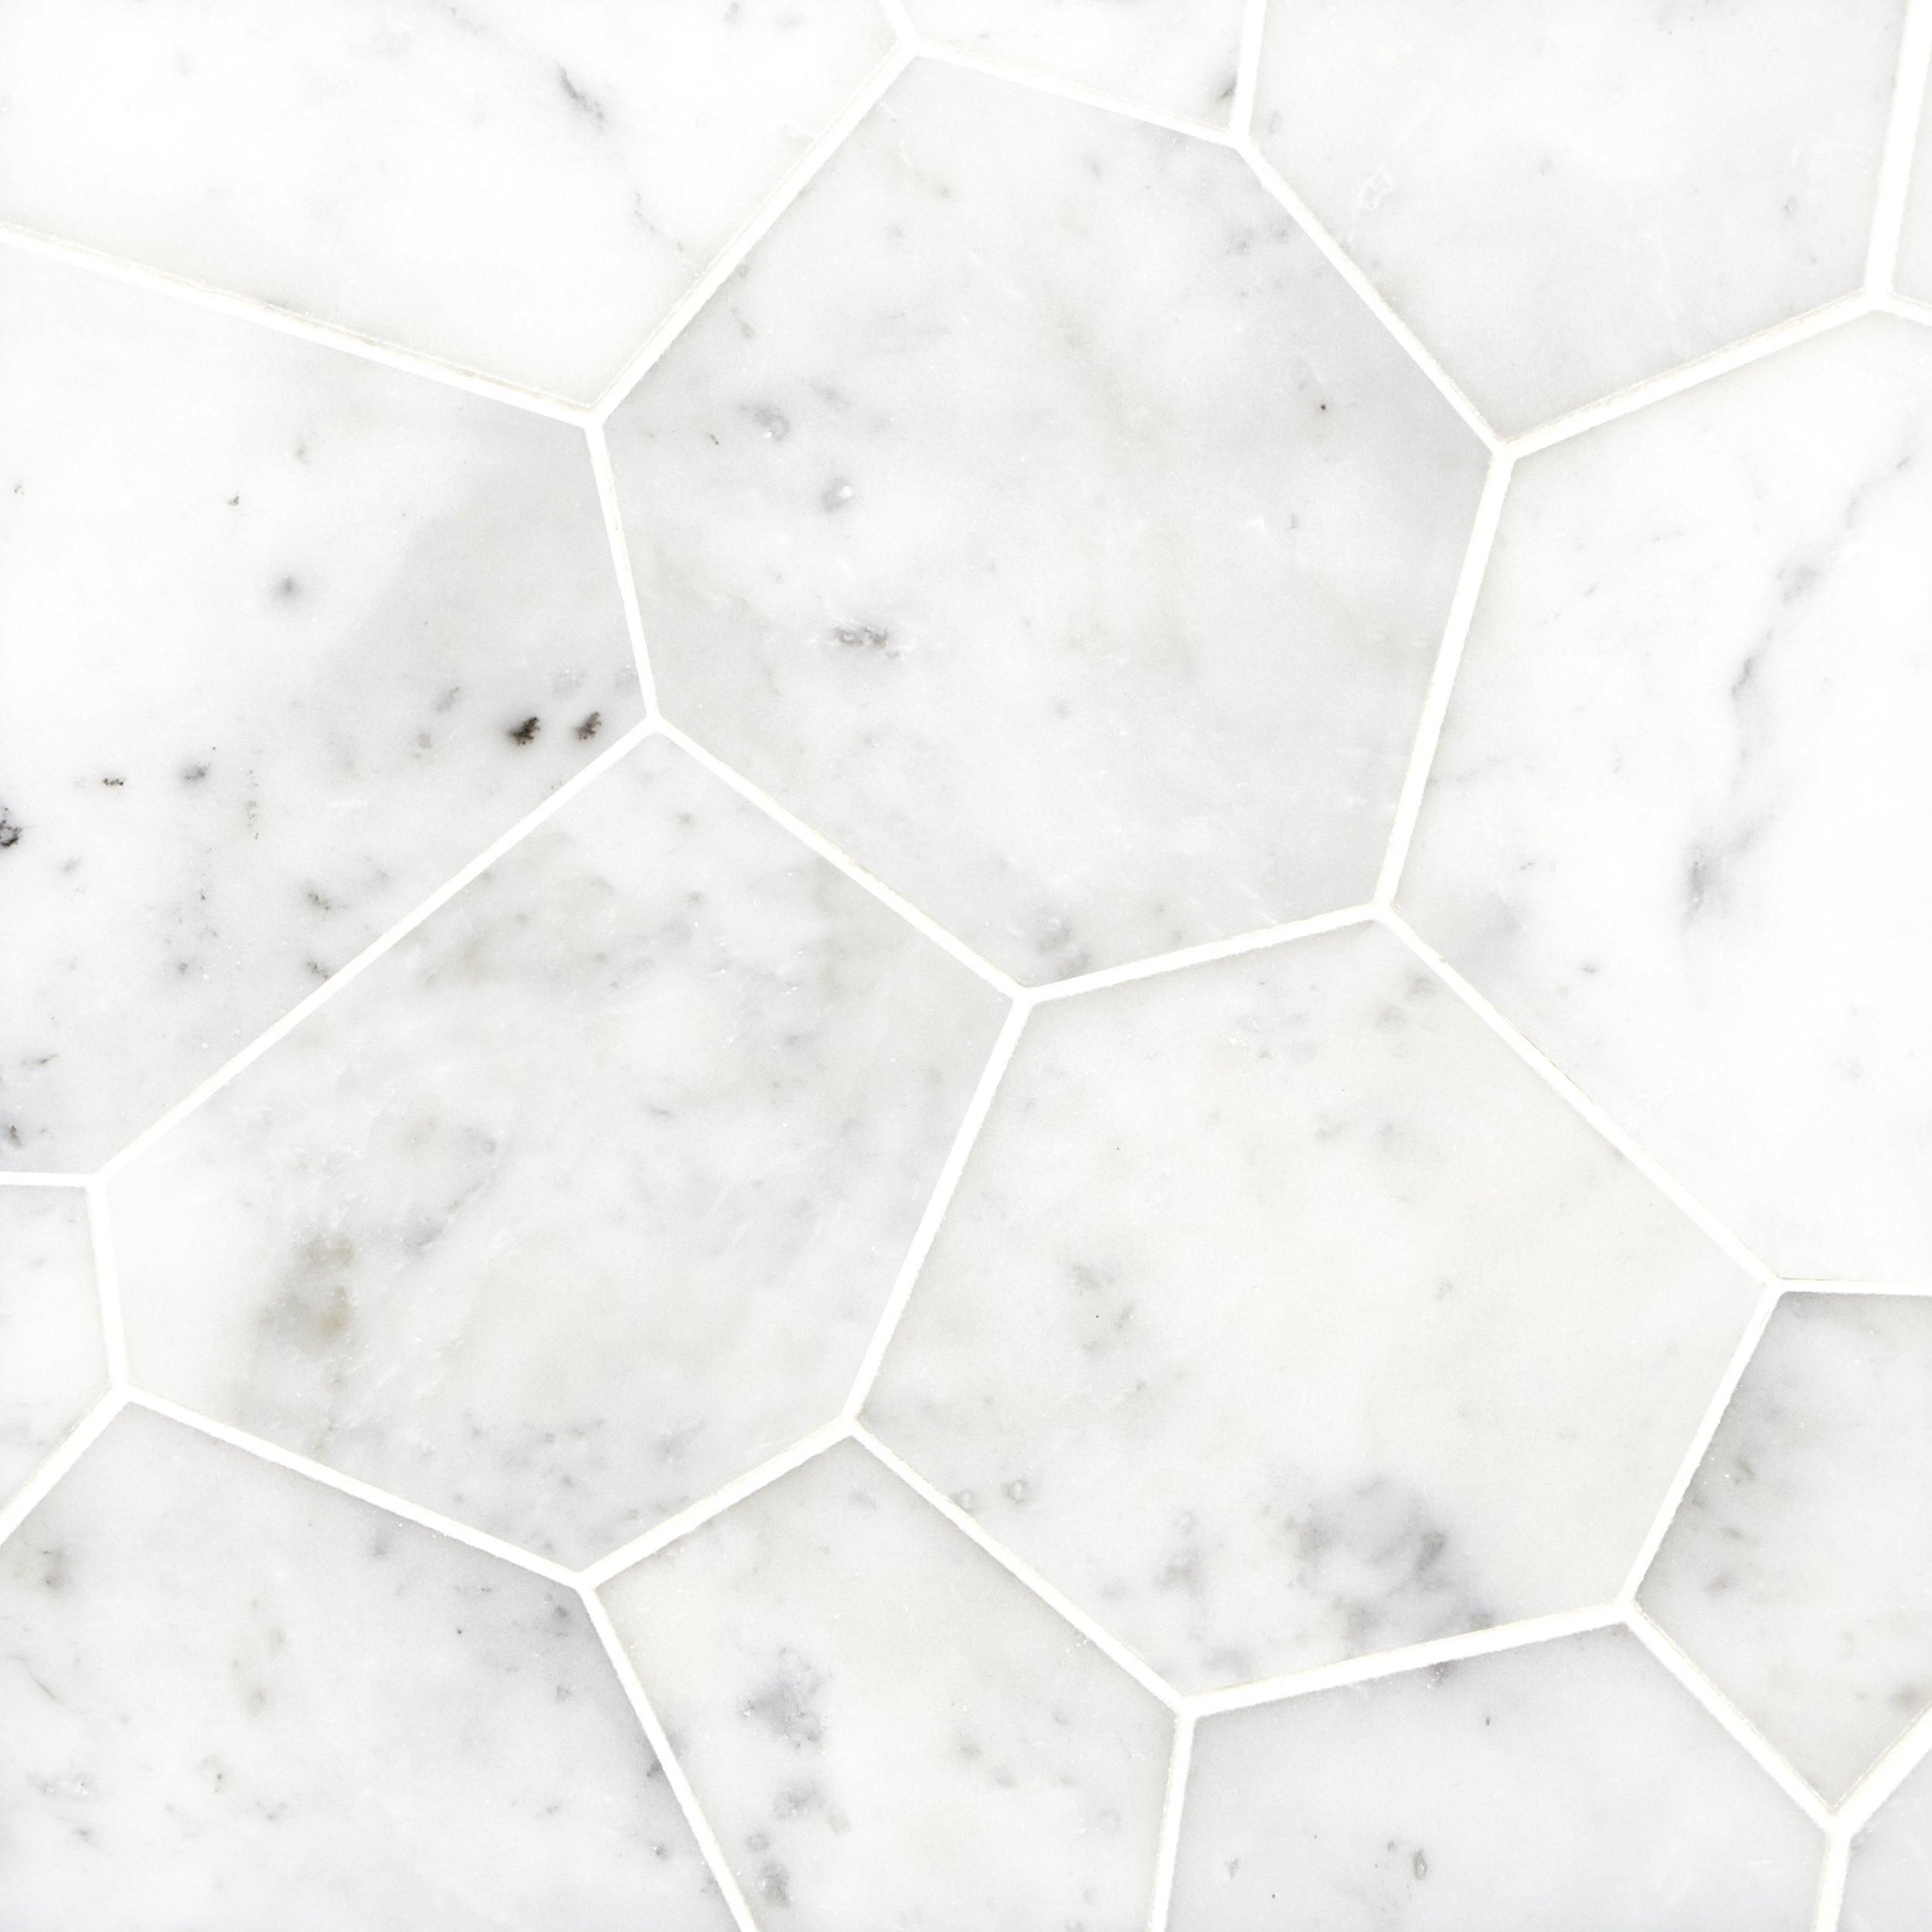 Carrara White Flagstone Polished Marble Tile Polished Marble Tiles Marble Tile Flagstone Tile